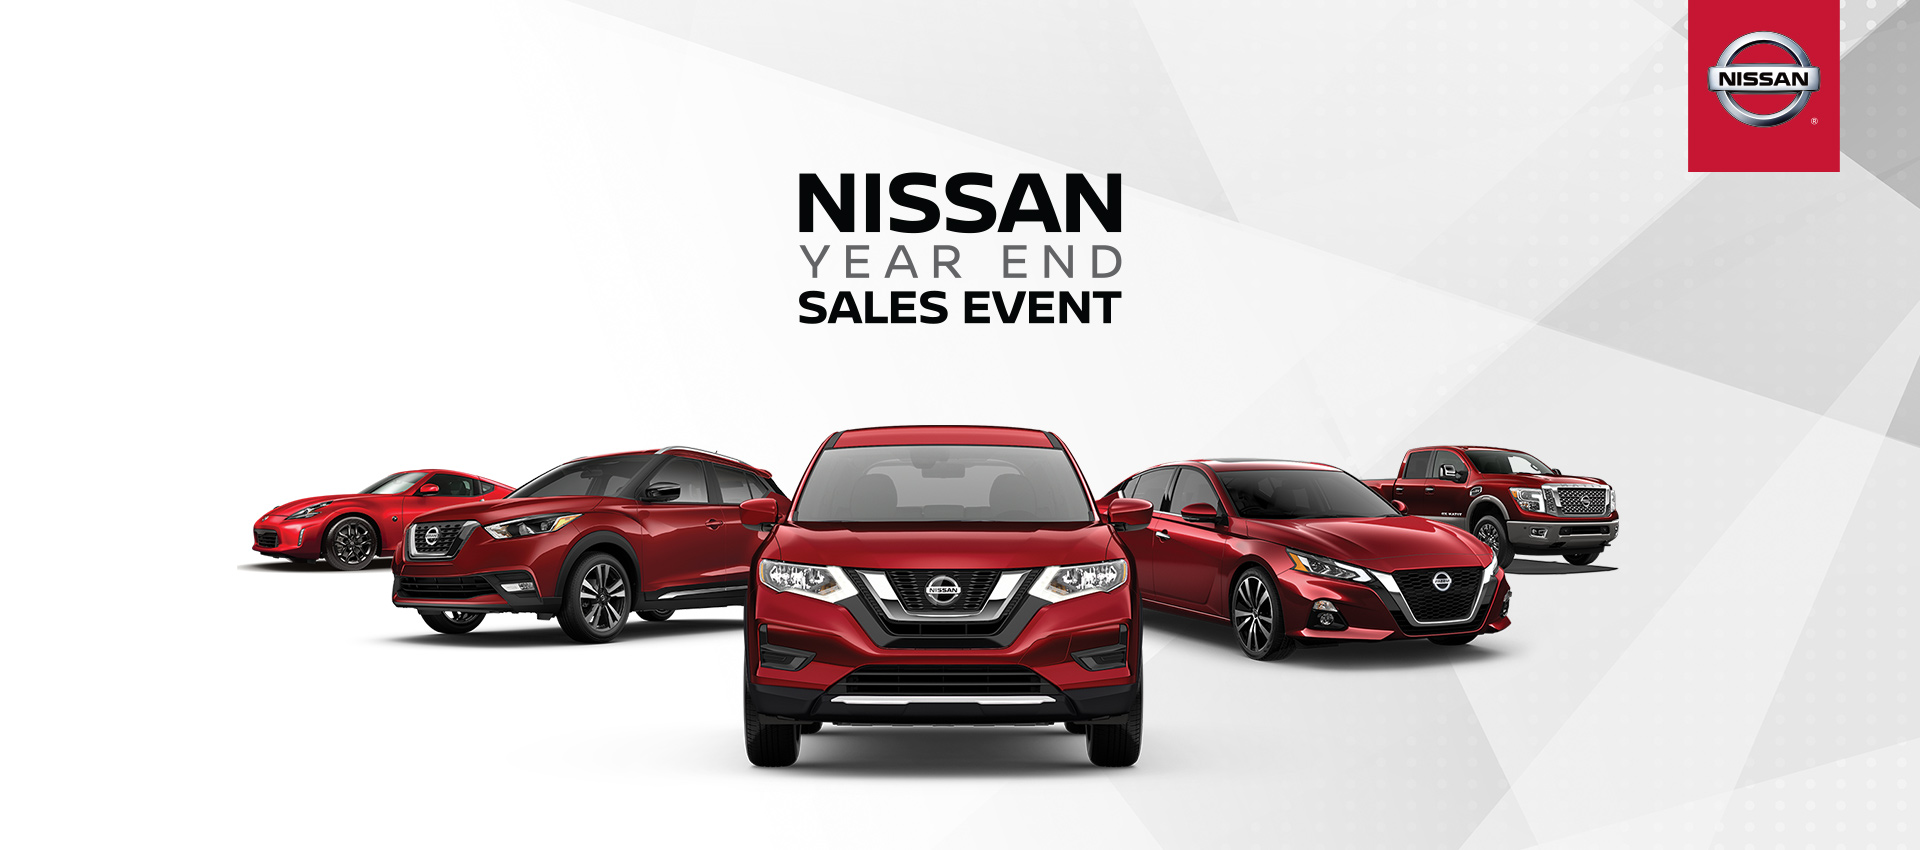 Mossy Nissan - Year End Event